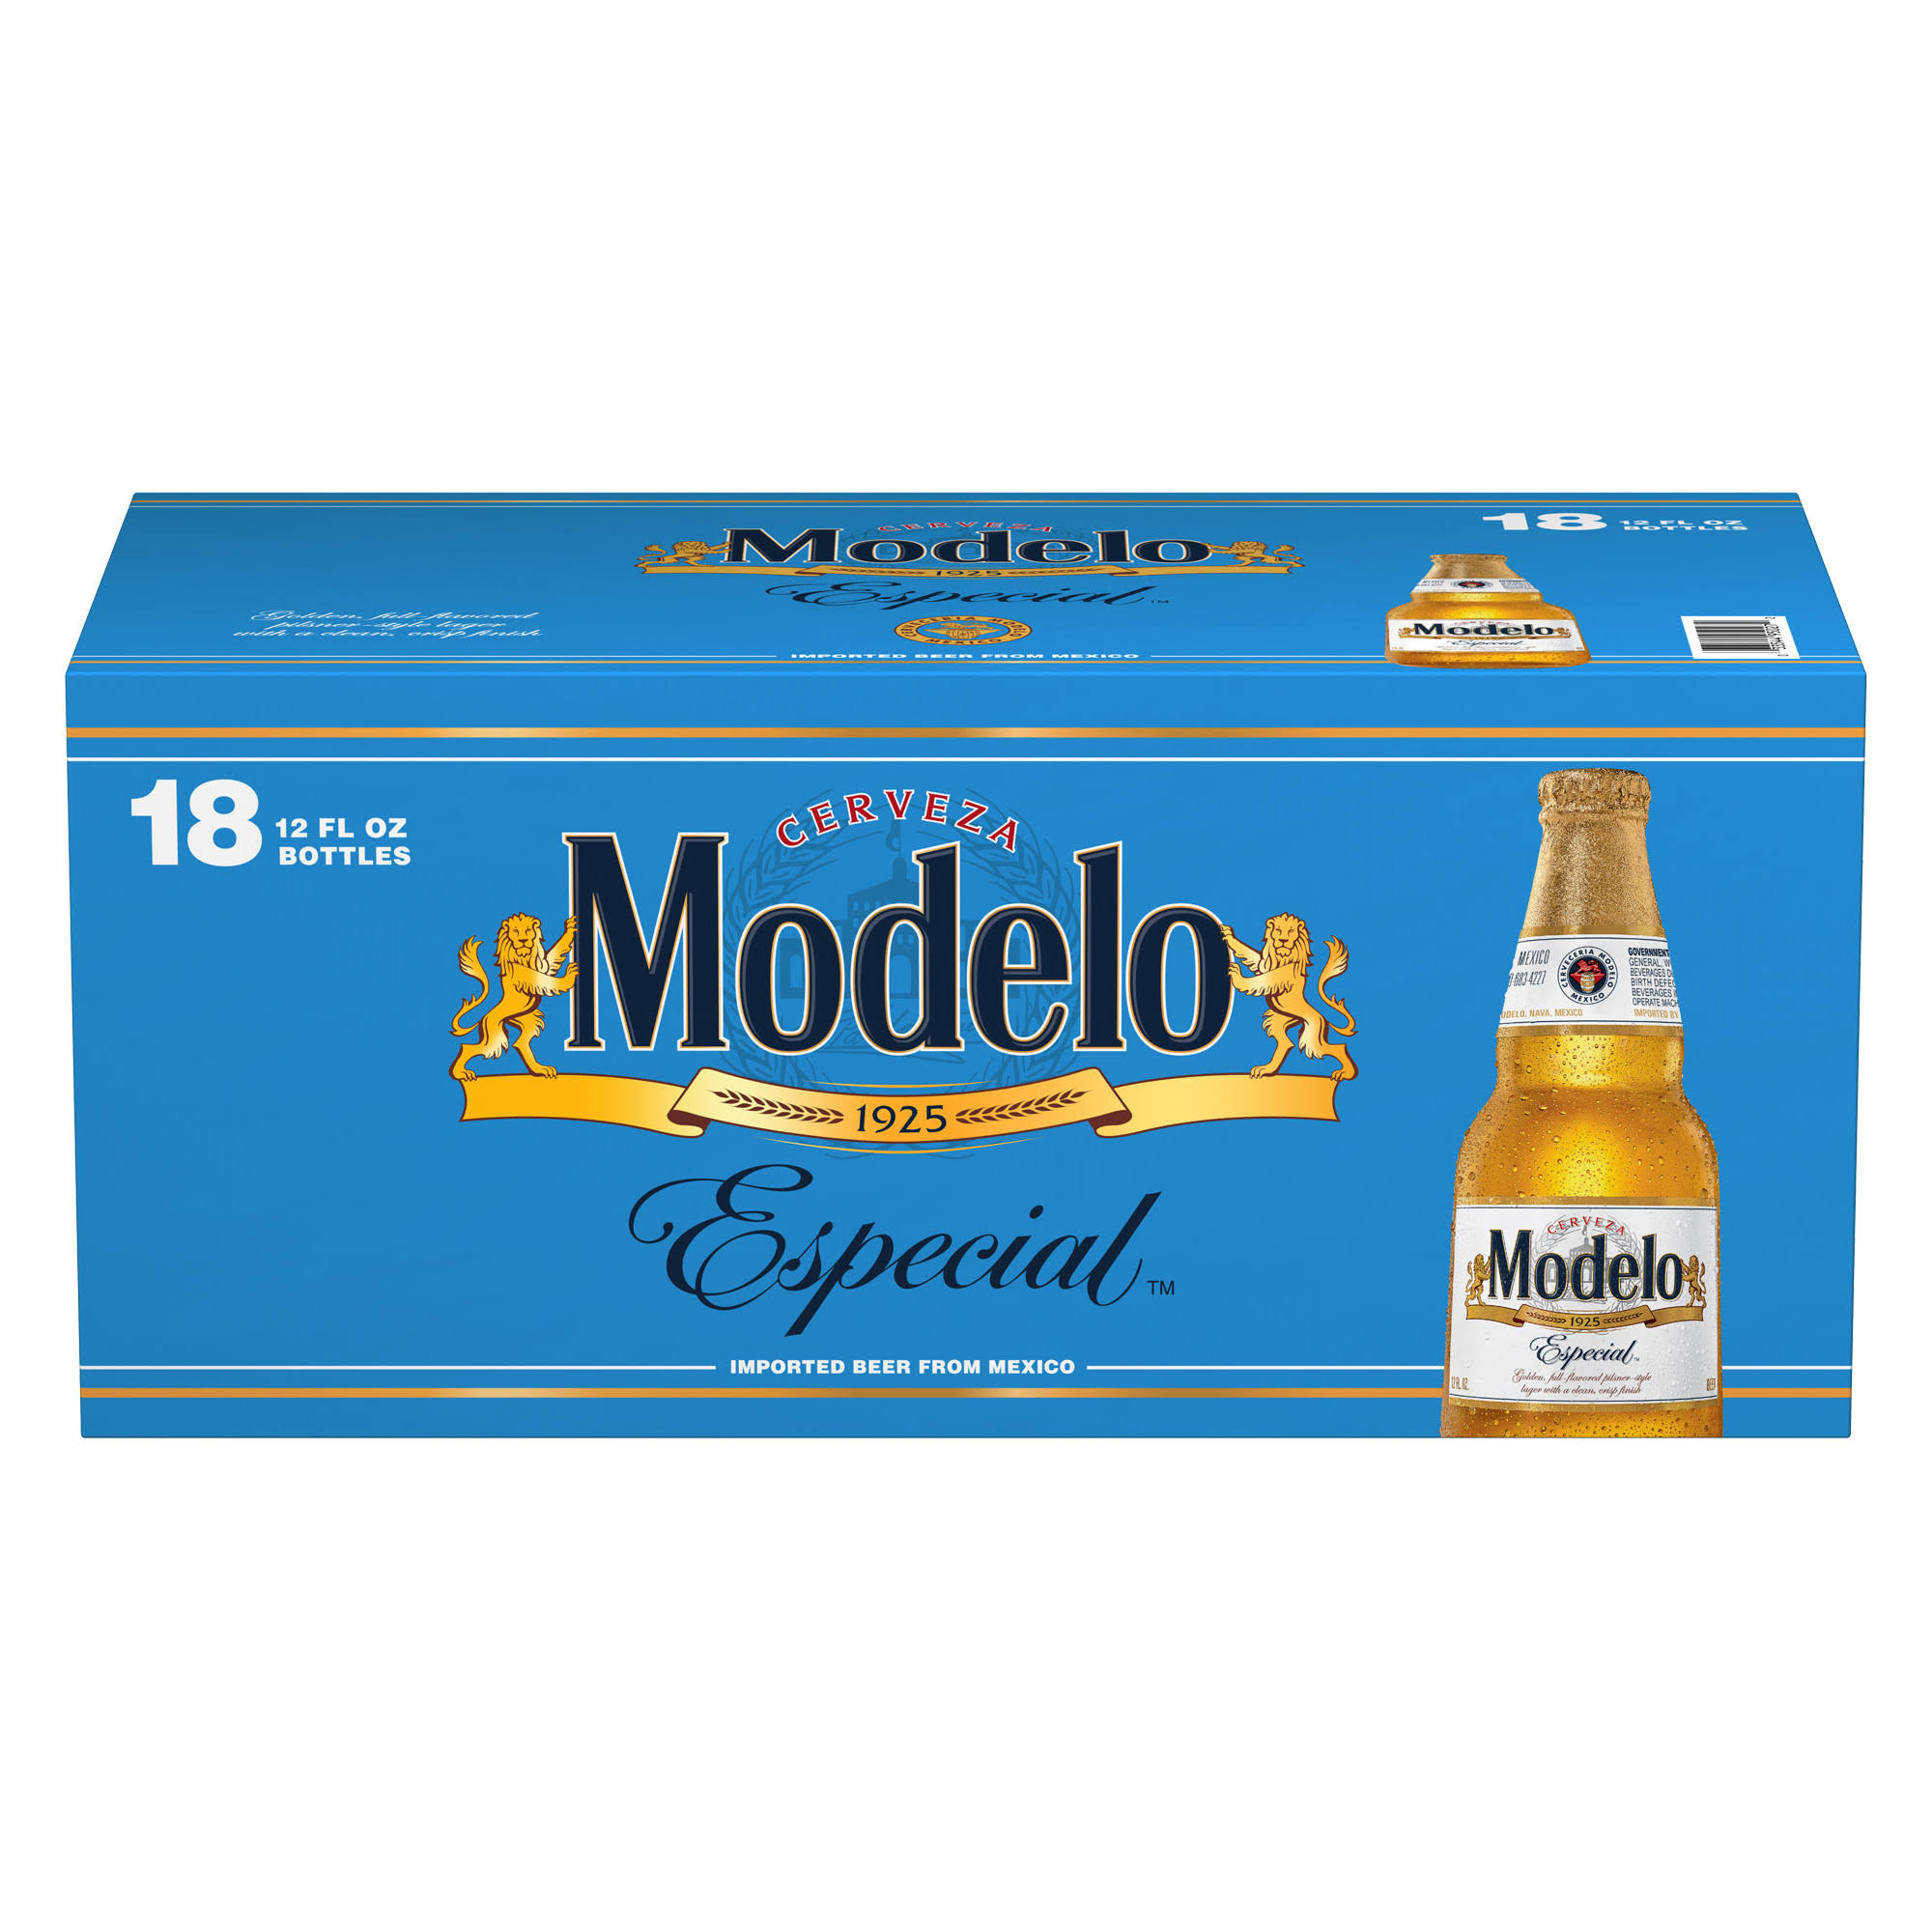 Modelo Especial Beer - 18 pack, 12 fl oz bottles